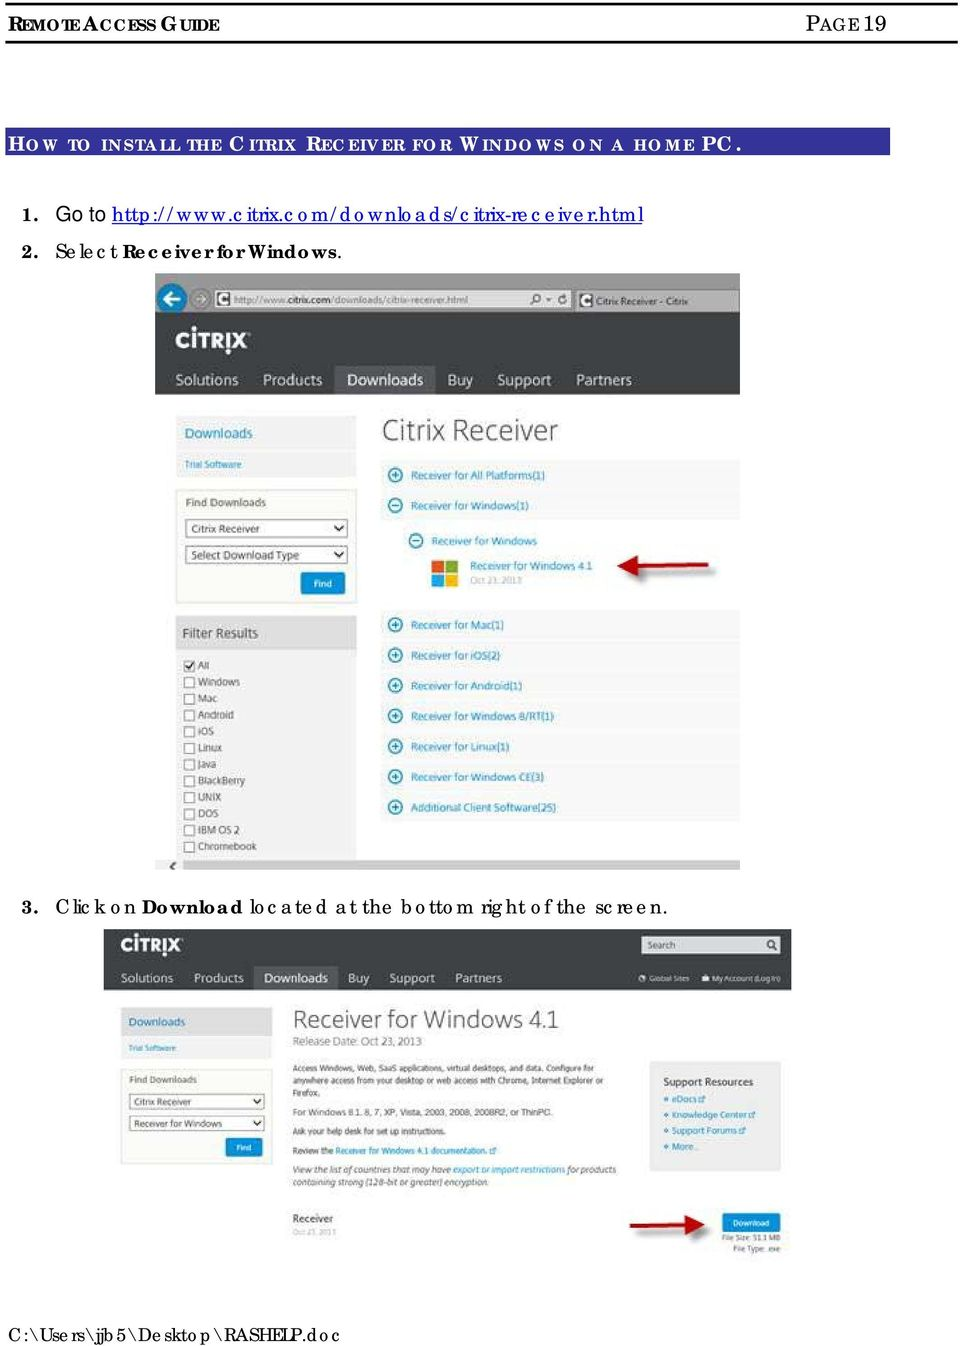 com/downloads/citrix-receiver.html 2.